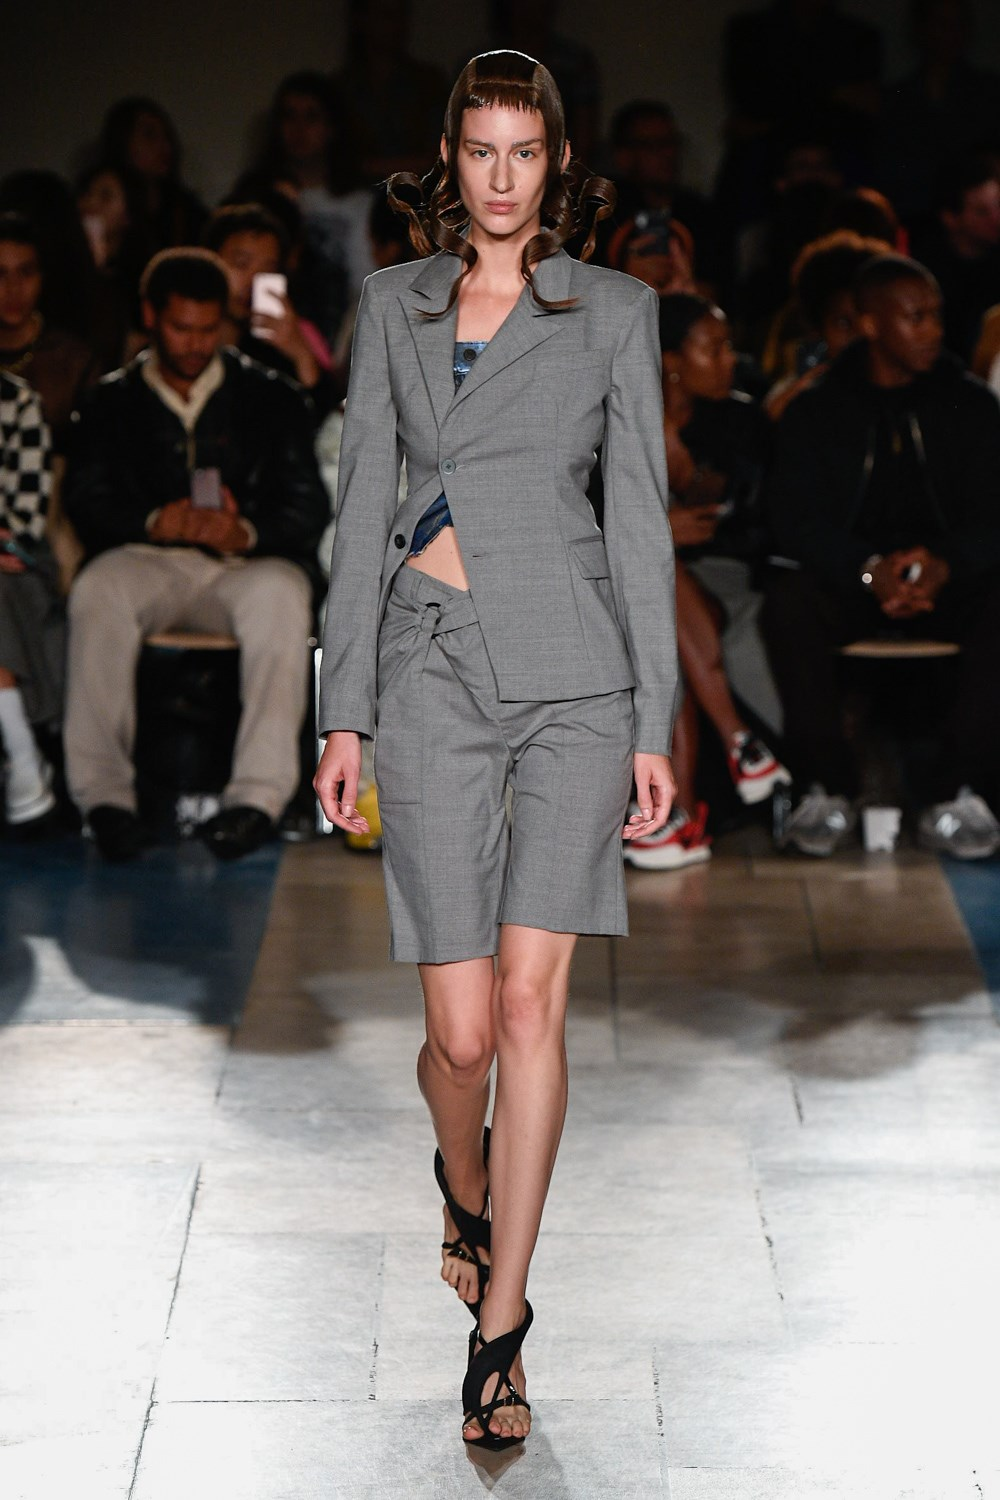 Shorts Suit Spring 2020 Fashion Trend